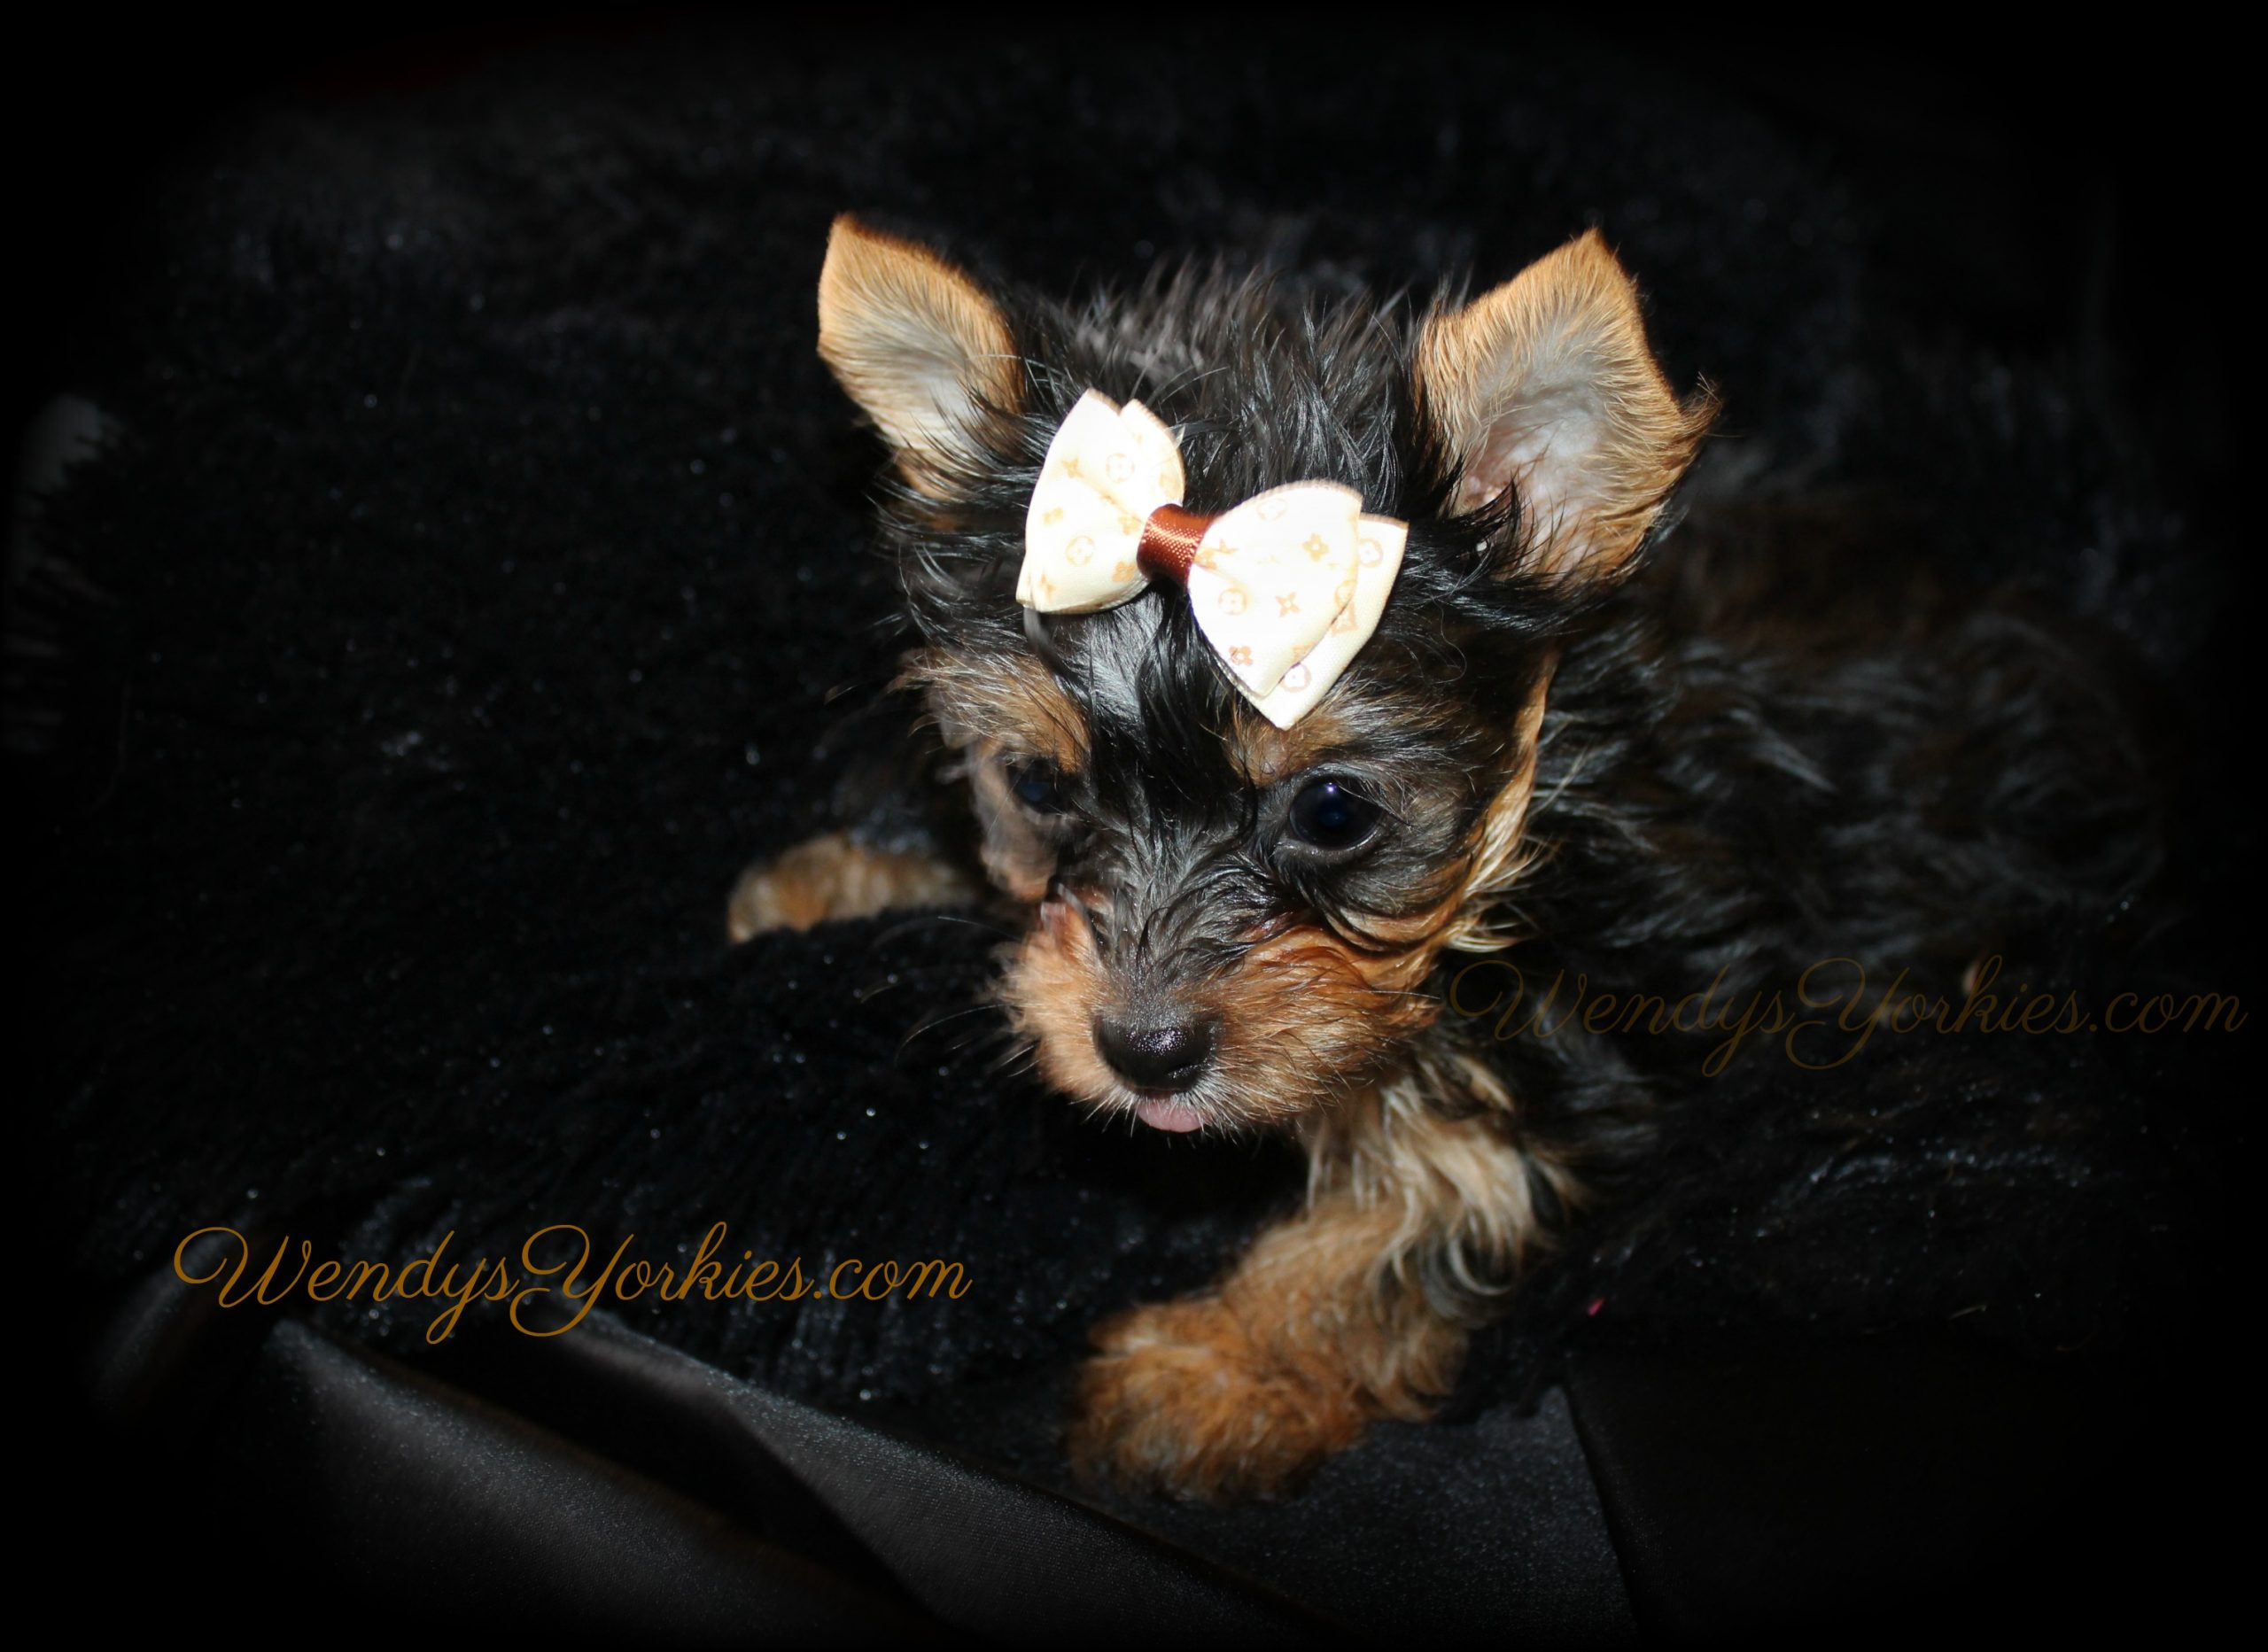 Teacup Male Yorkie puppies for sale in Texas, Anna m2, WendysYorkies.com